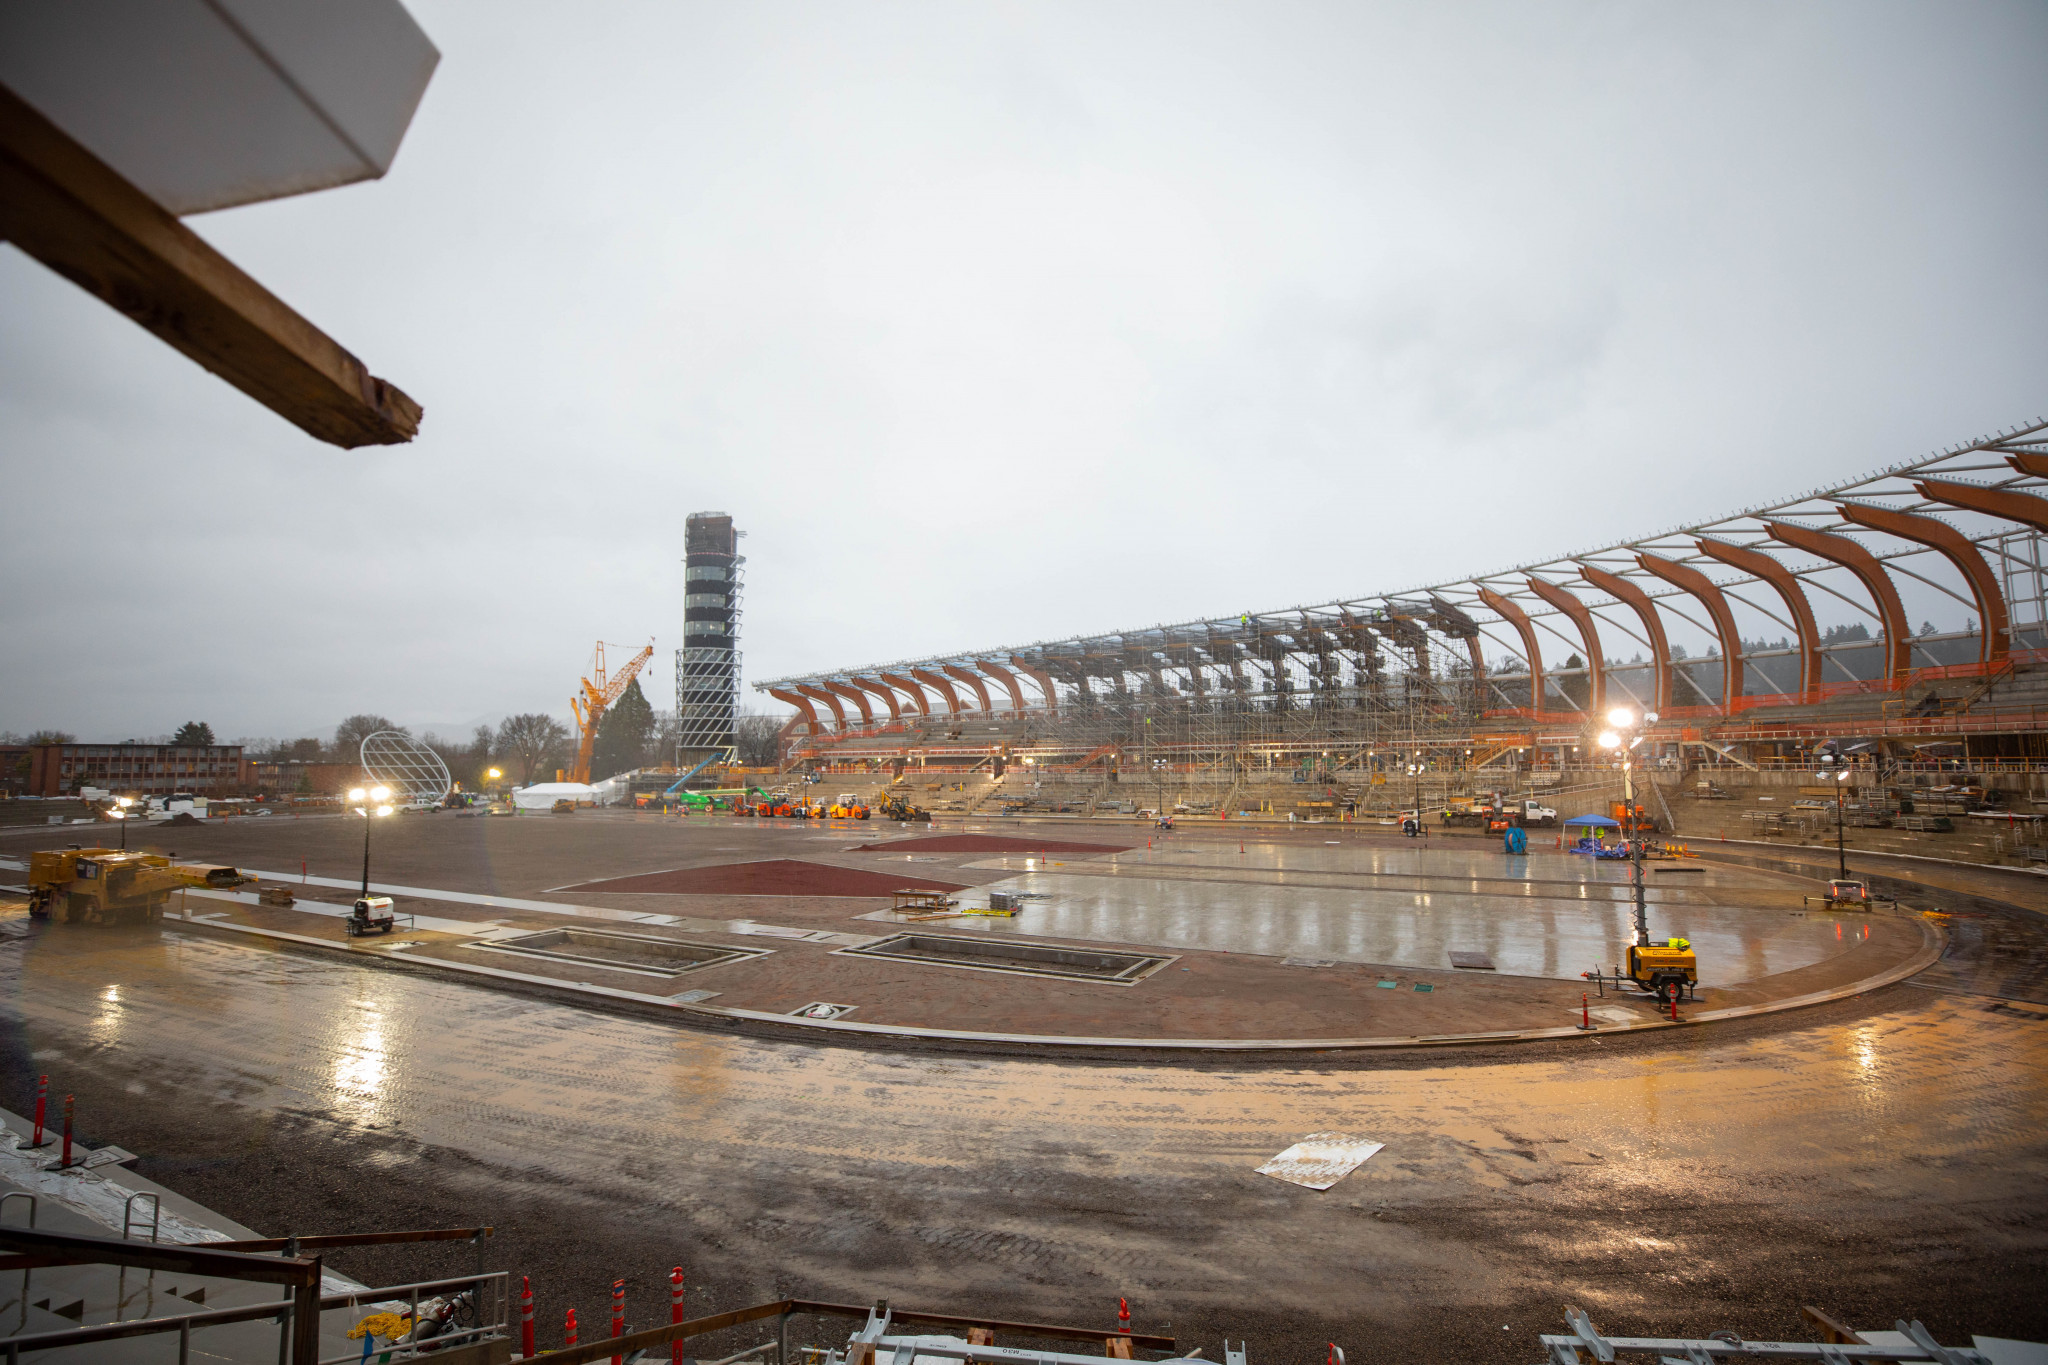 Hayward Field is being rebuilt specifically as an athletics stadium for next year's World Championships in Oregon ©Oregon 2021